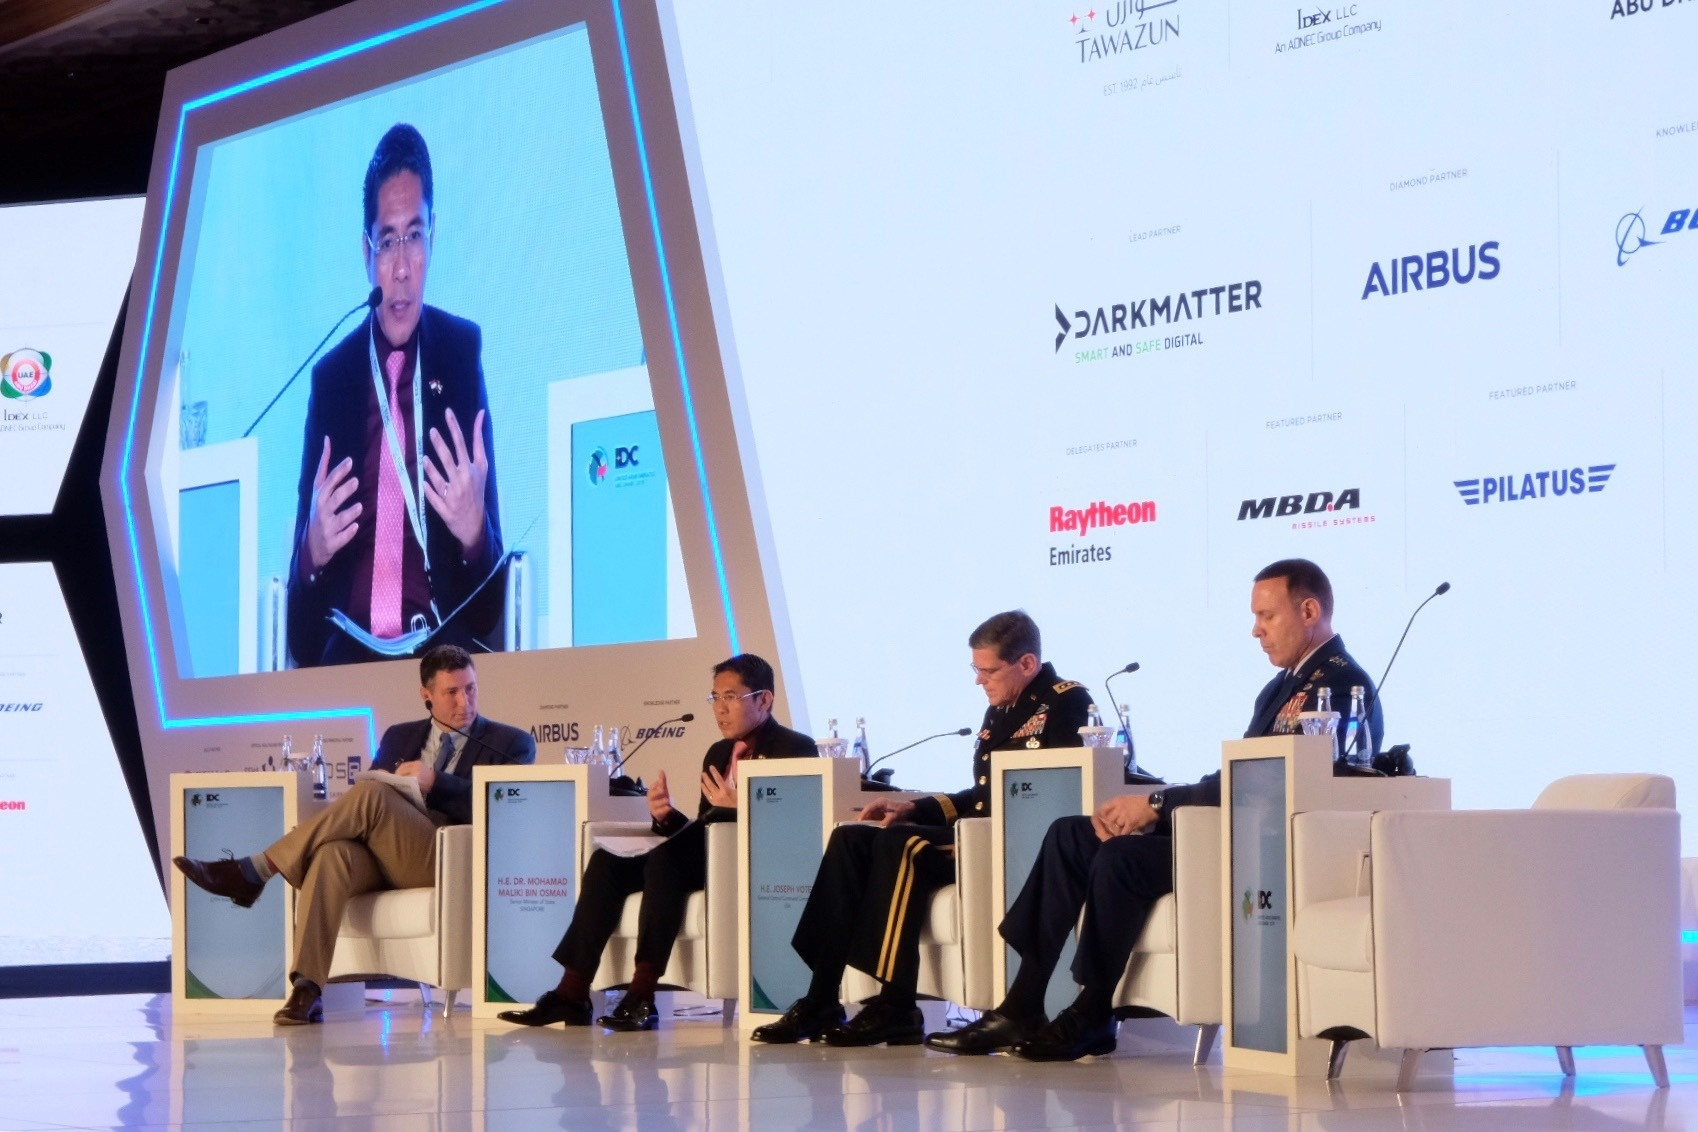 Senior Minister of State for Defence Dr Mohamad Maliki bin Osman (second from left) speaking on the panel for the topic -